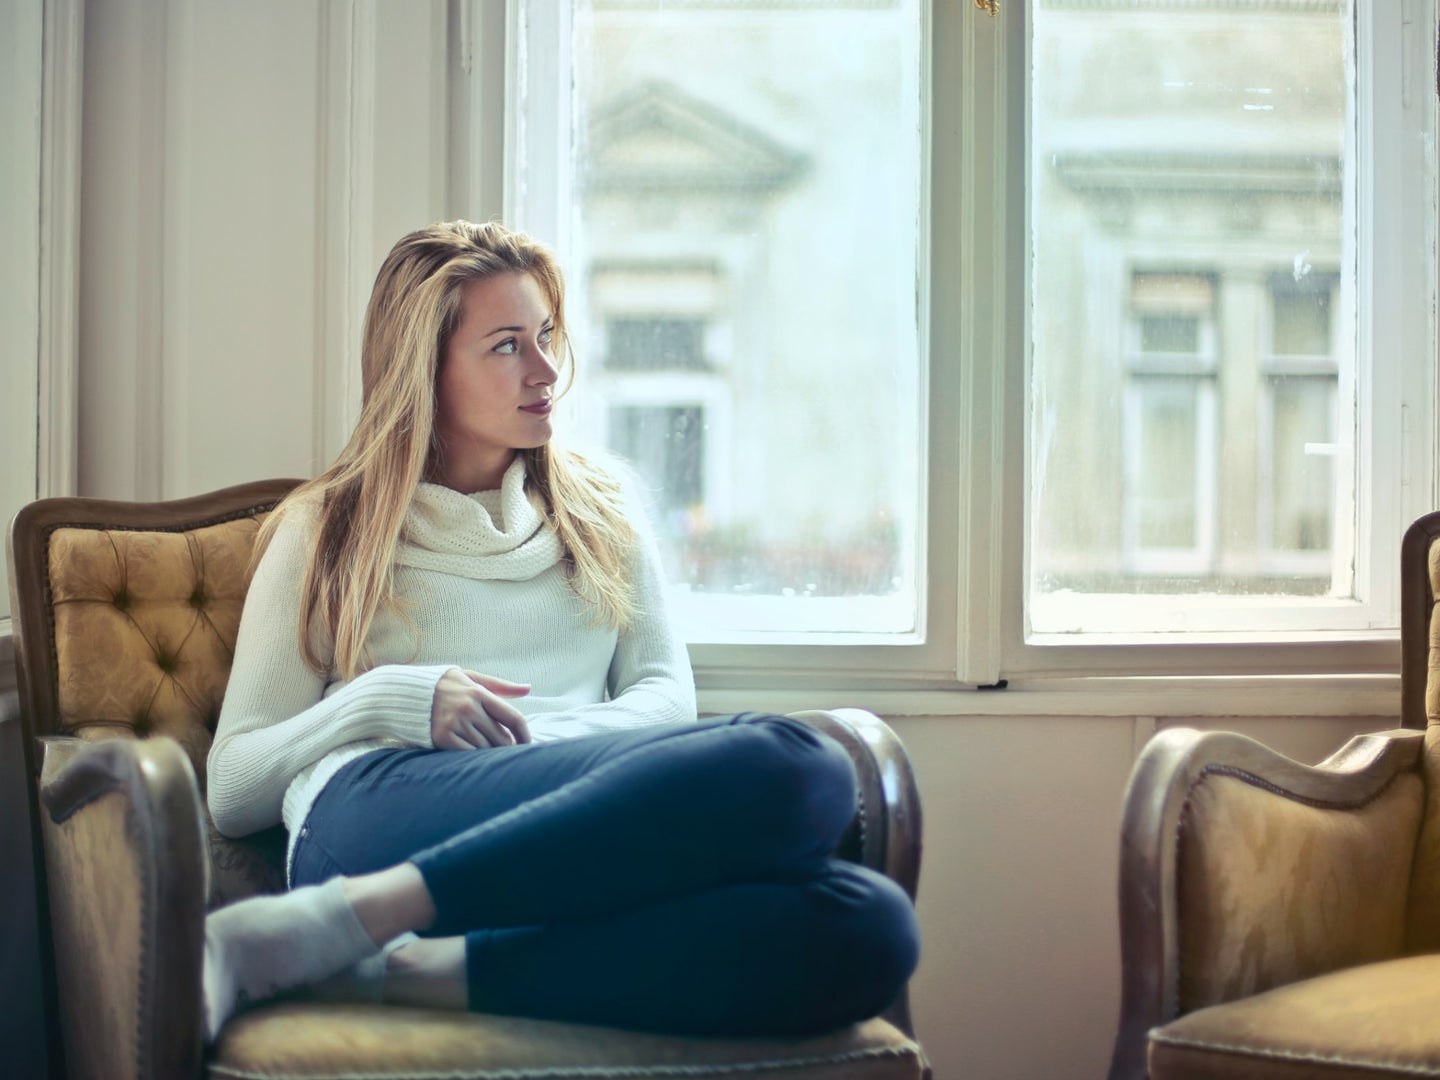 a blonde woman sitting in a chair by a window in a white sweater and jeans